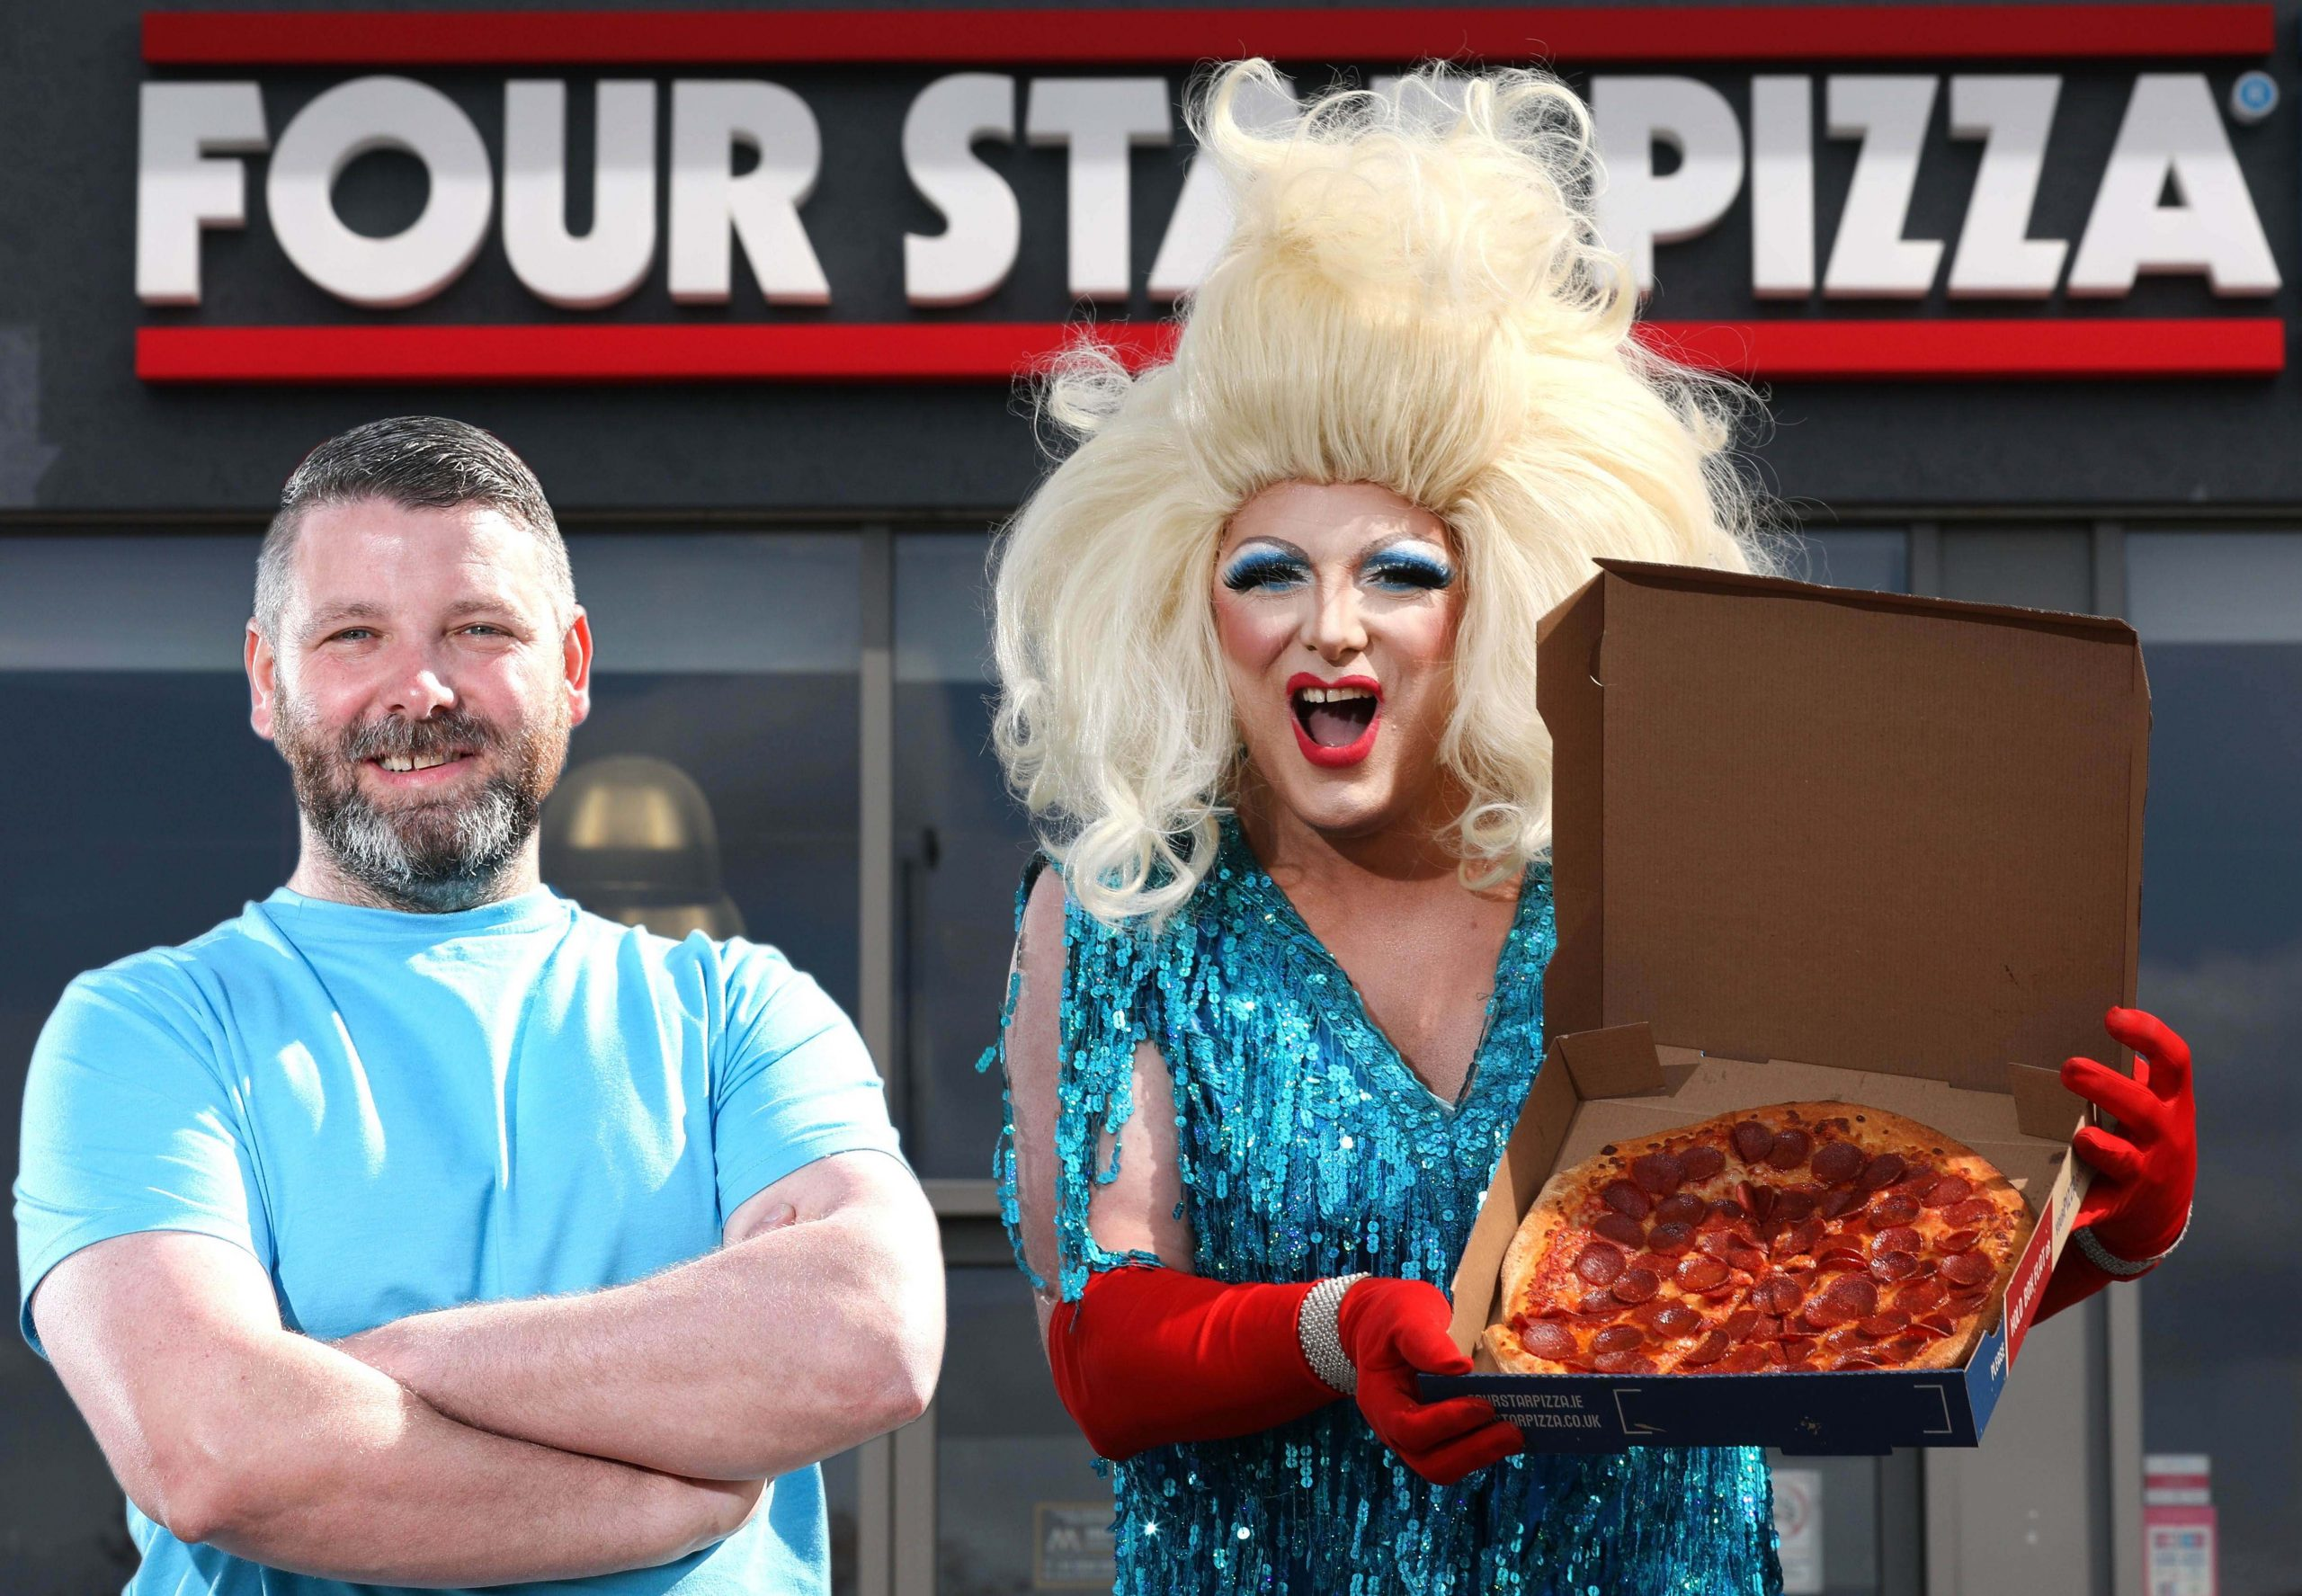 Four Star treatment's a real drag for pizza-loving Alfie